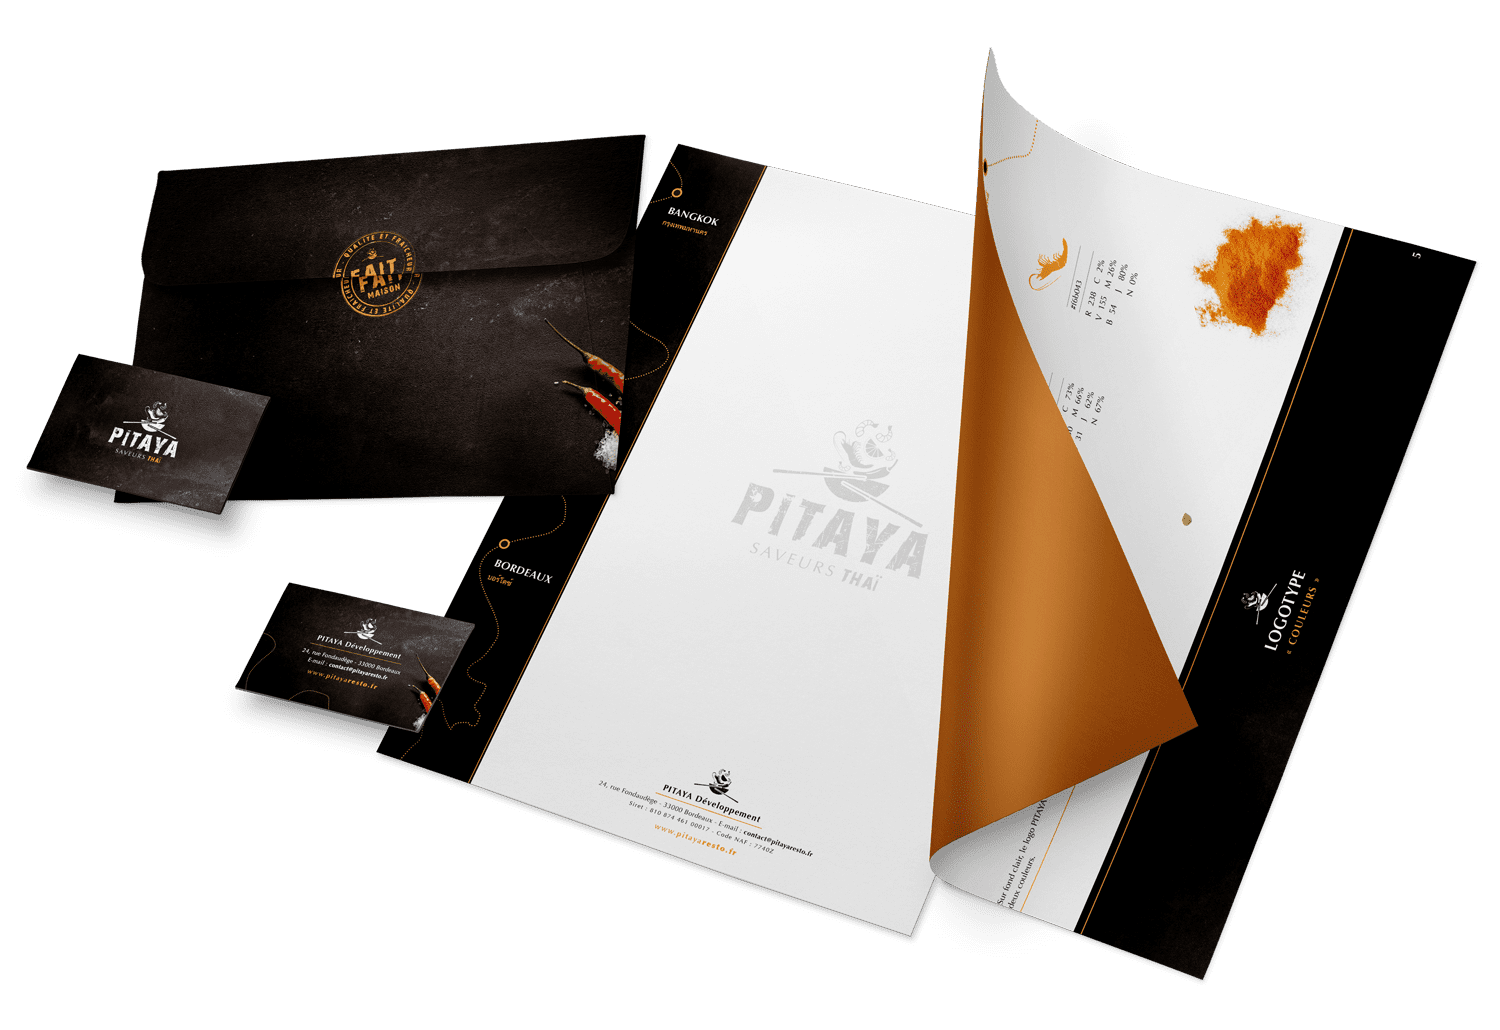 creation-logo-pitaya-franchise-restaurant-socreativ